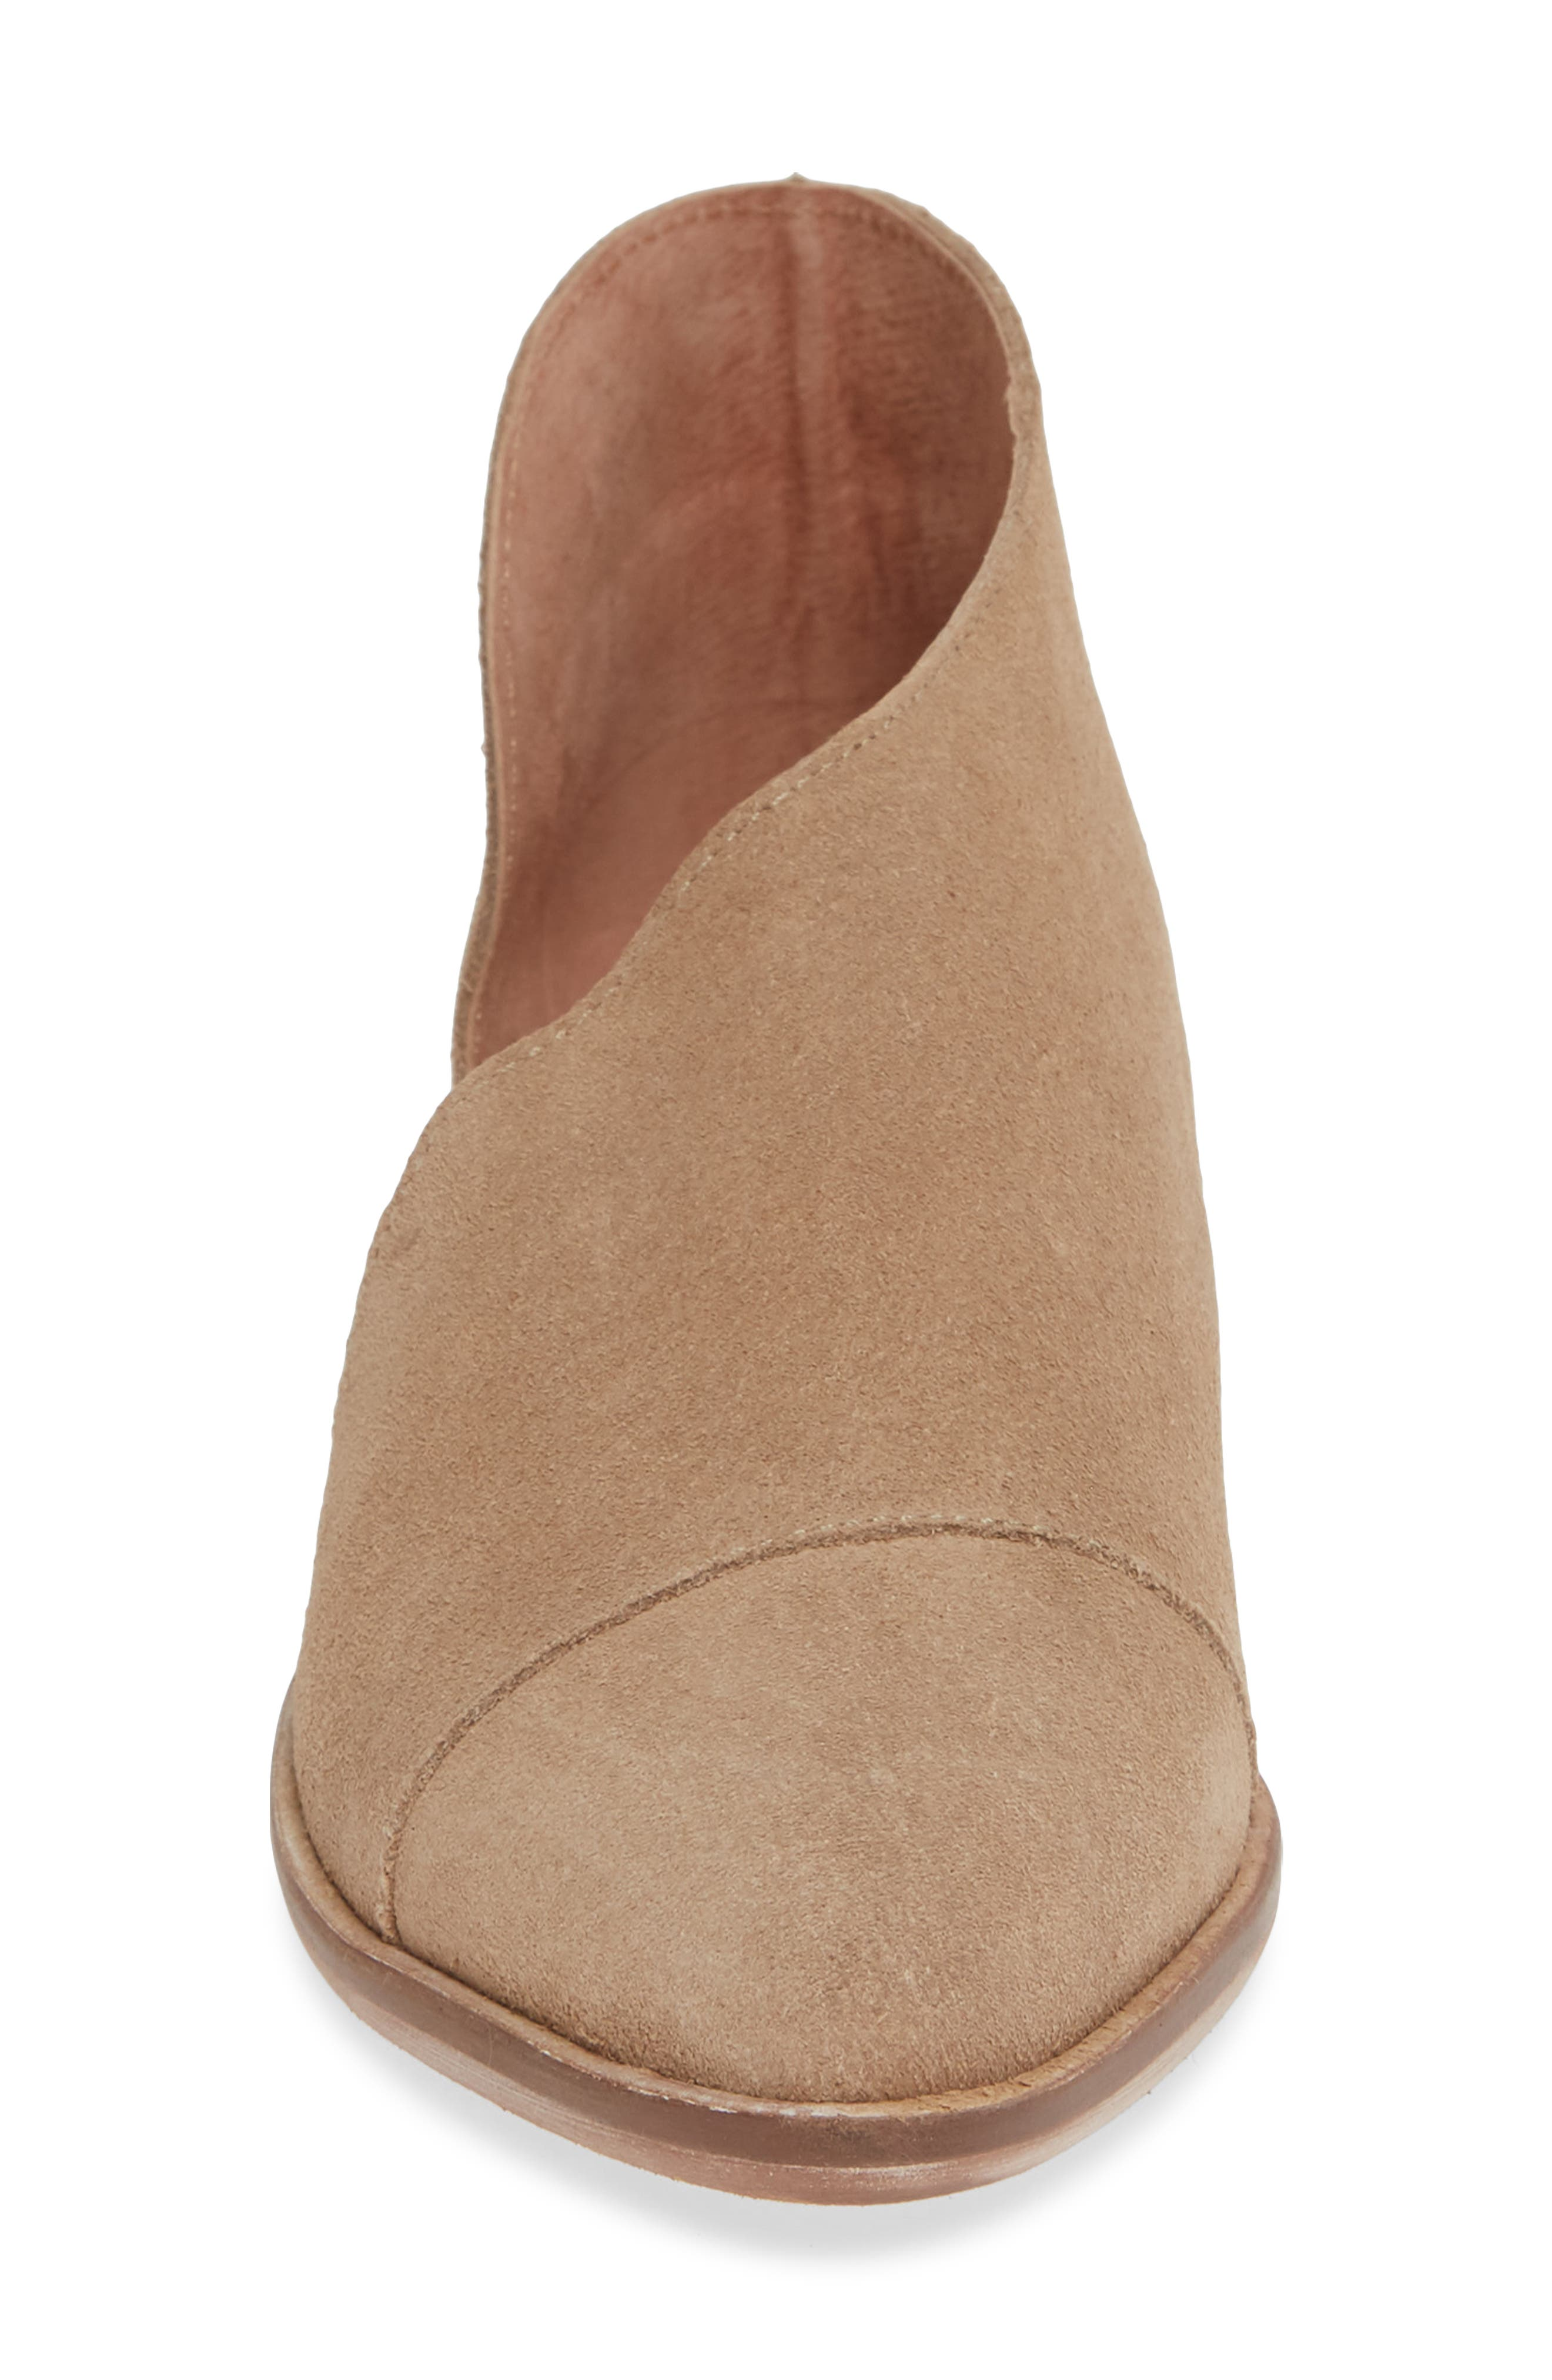 'Royale' Pointy Toe Flat,                             Alternate thumbnail 4, color,                             BEIGE SUEDE